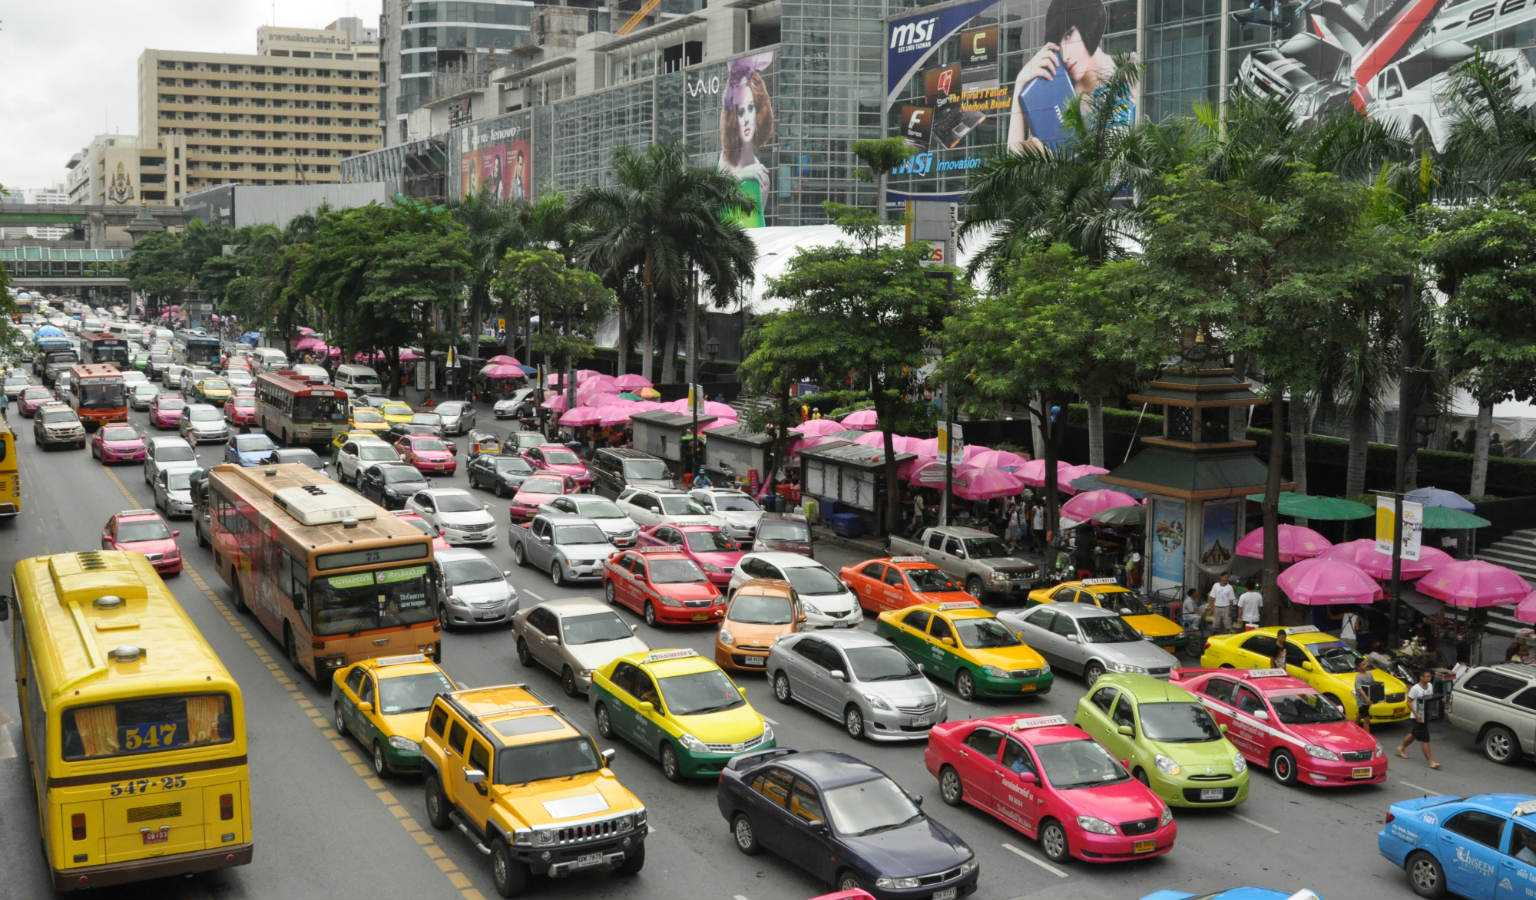 cars and taxis in Bangkok's rush hour